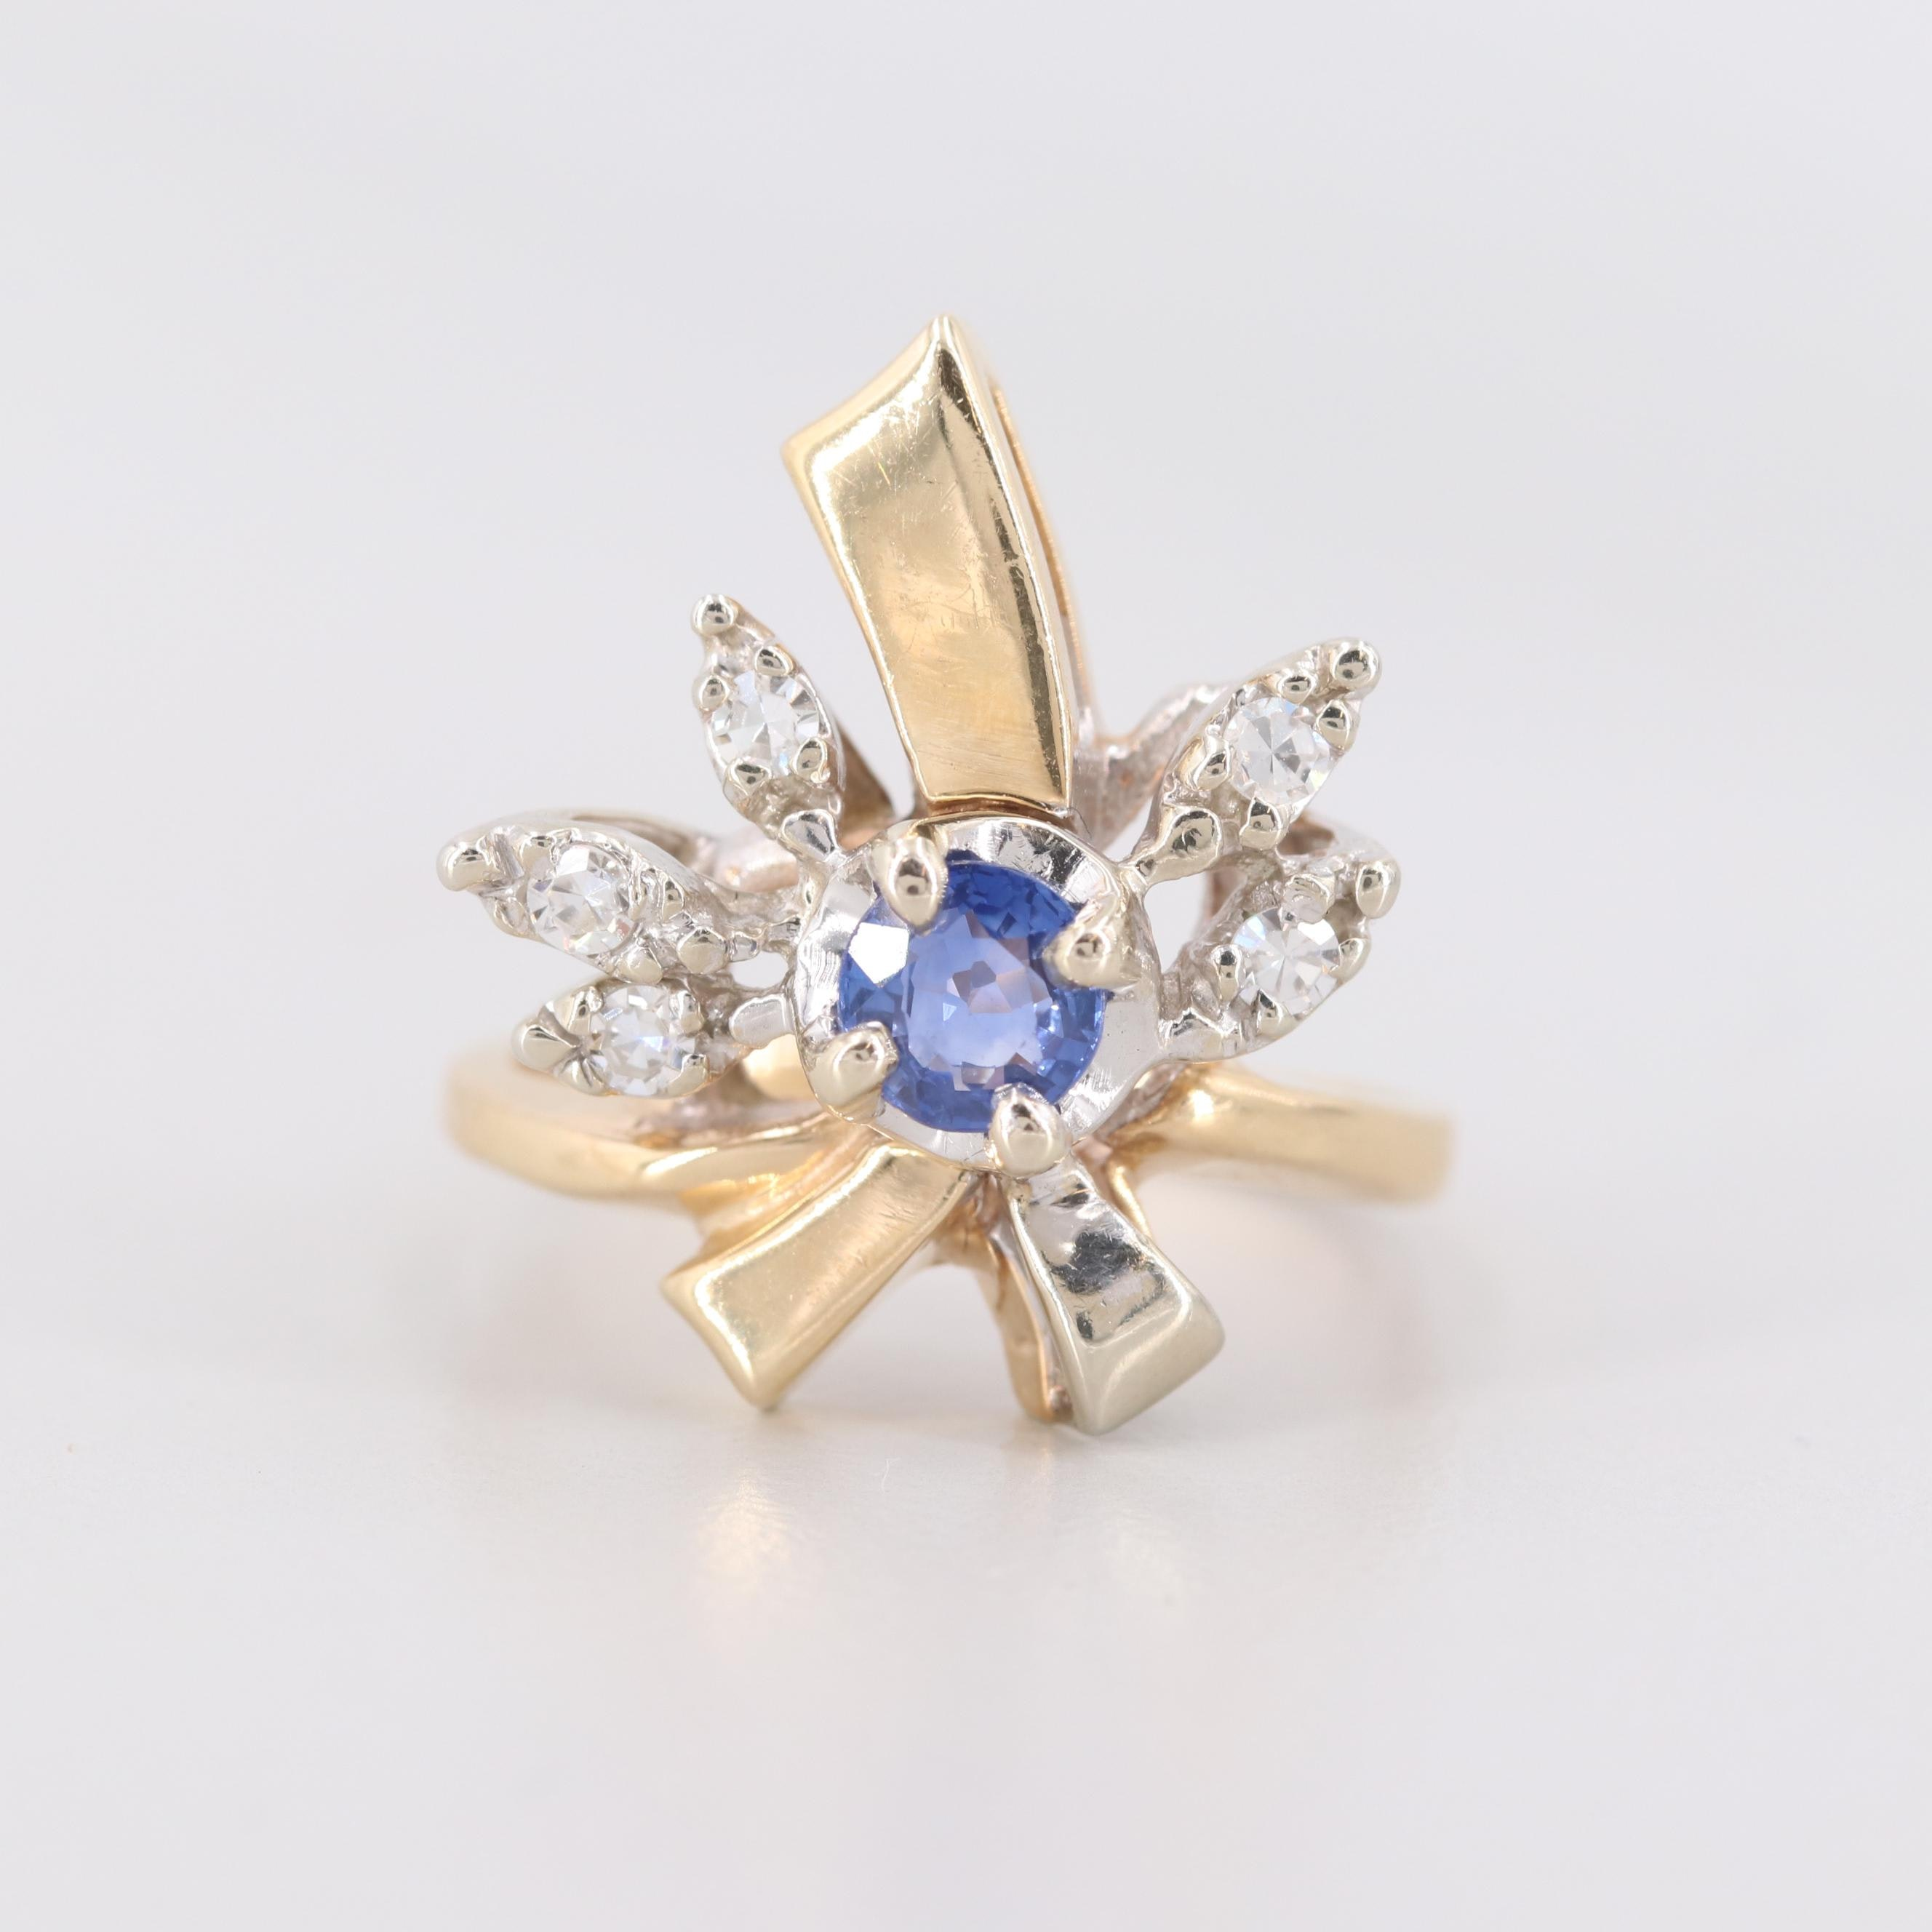 14K Yellow Gold Sapphire and Dimaond Ring